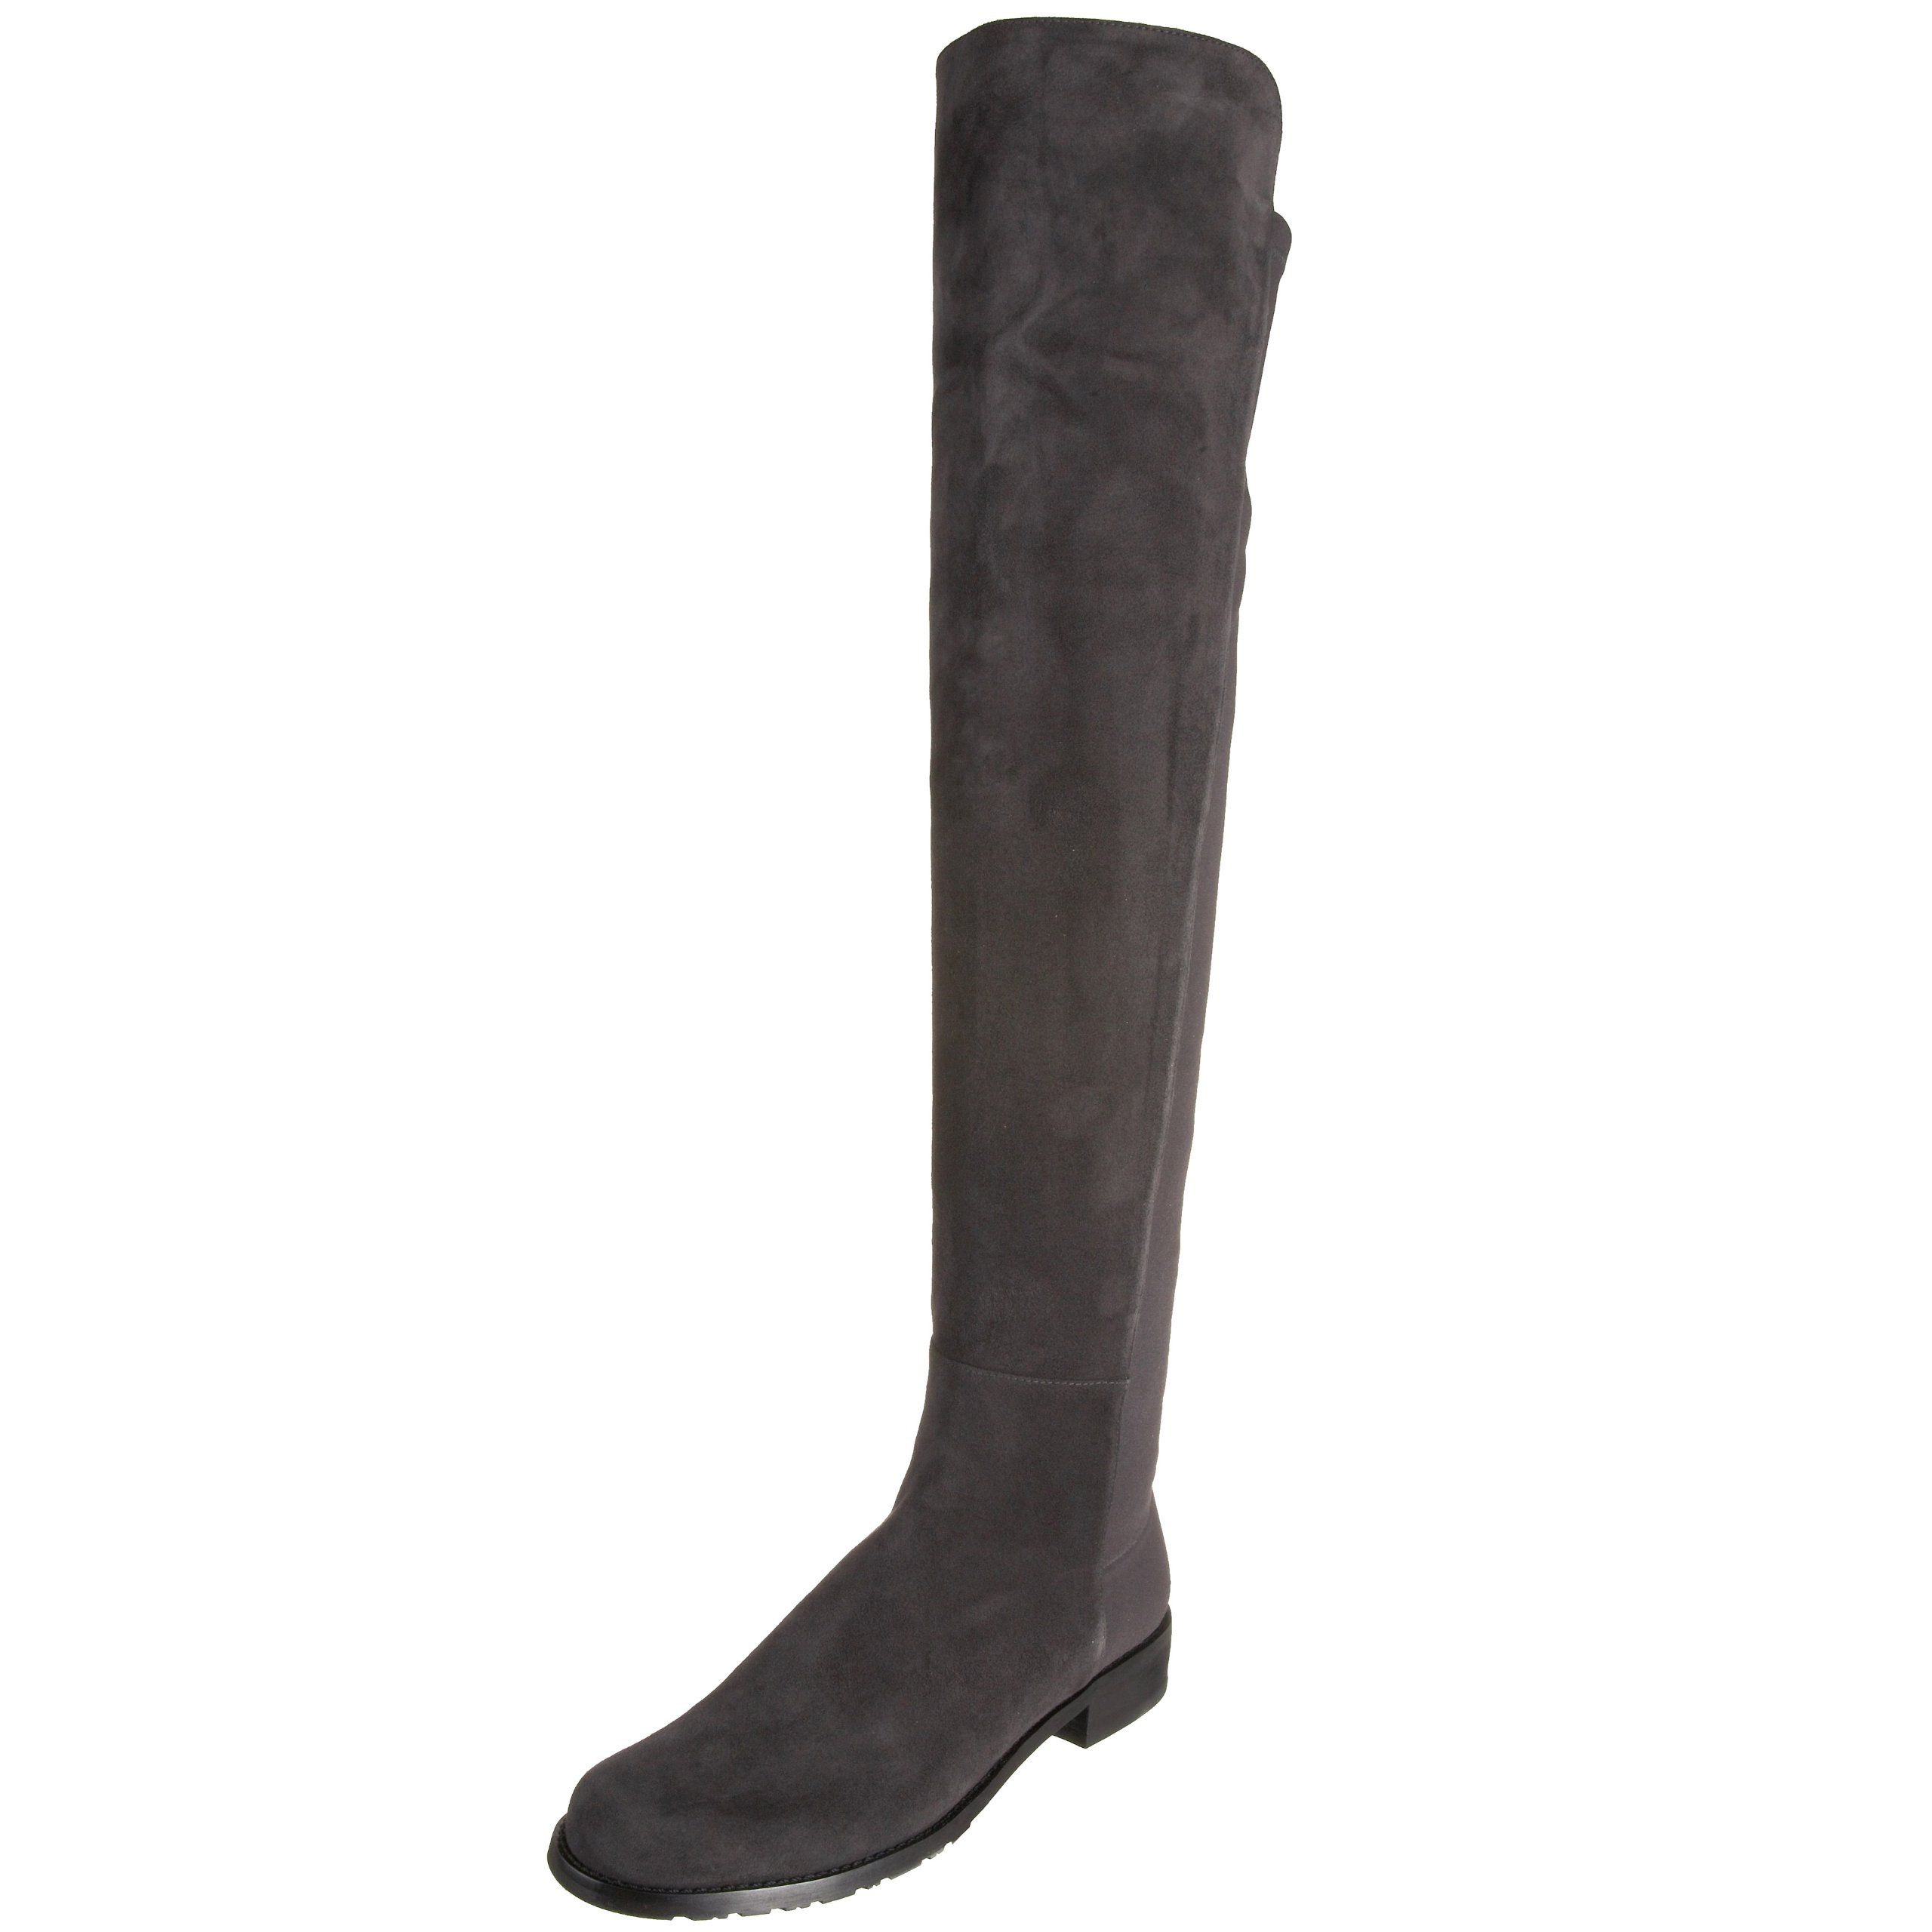 19798e4d9ed45 Stuart Weitzman Women's 5050 Over-the-Knee Boot,Anthracite Suede,9 M ...